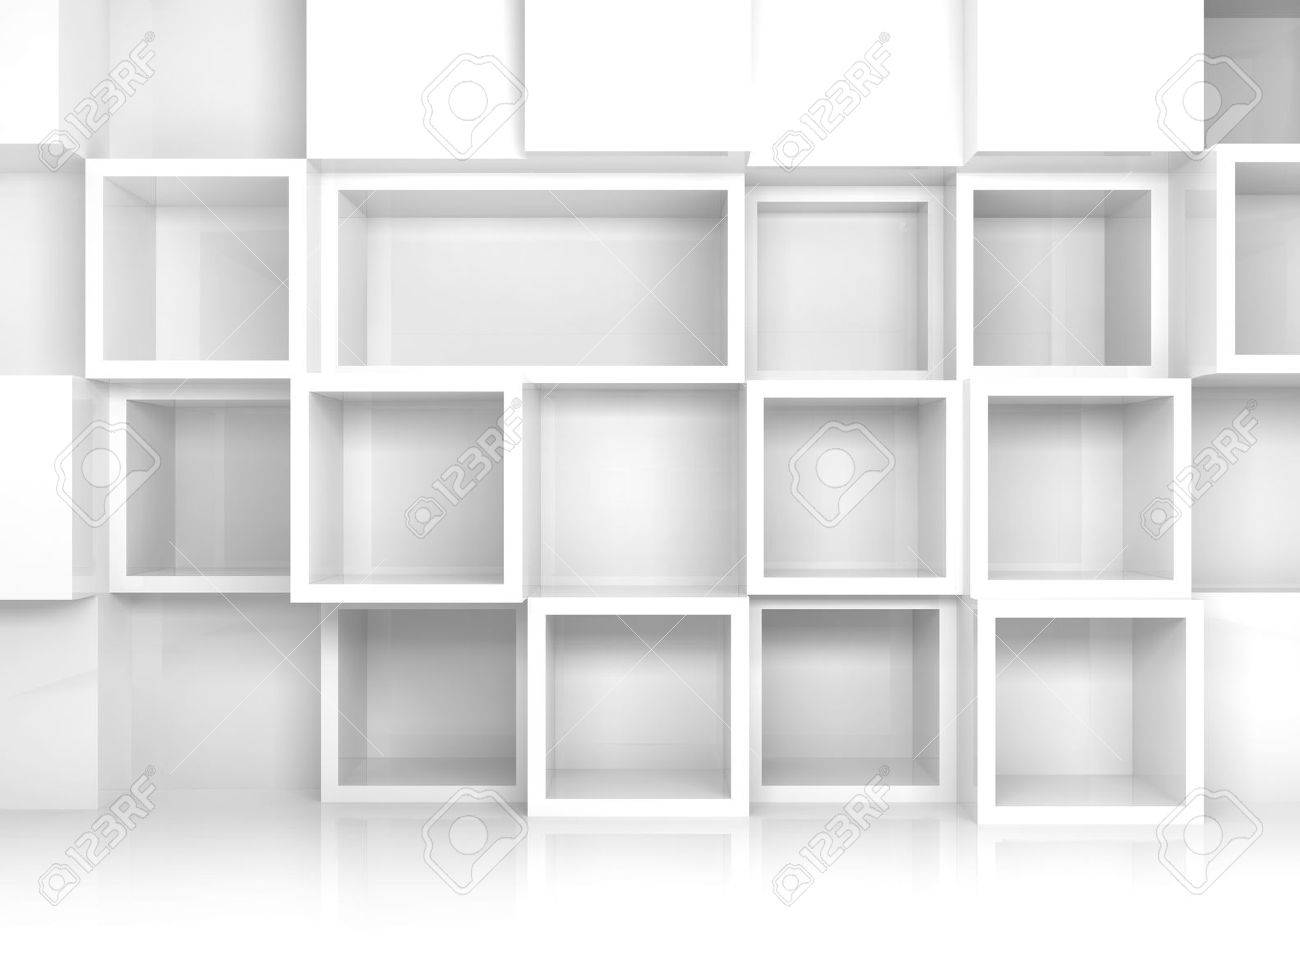 abstract empty 3d interior with white square shelves on the wall rh 123rf com white square shelves ikea white gloss square shelves